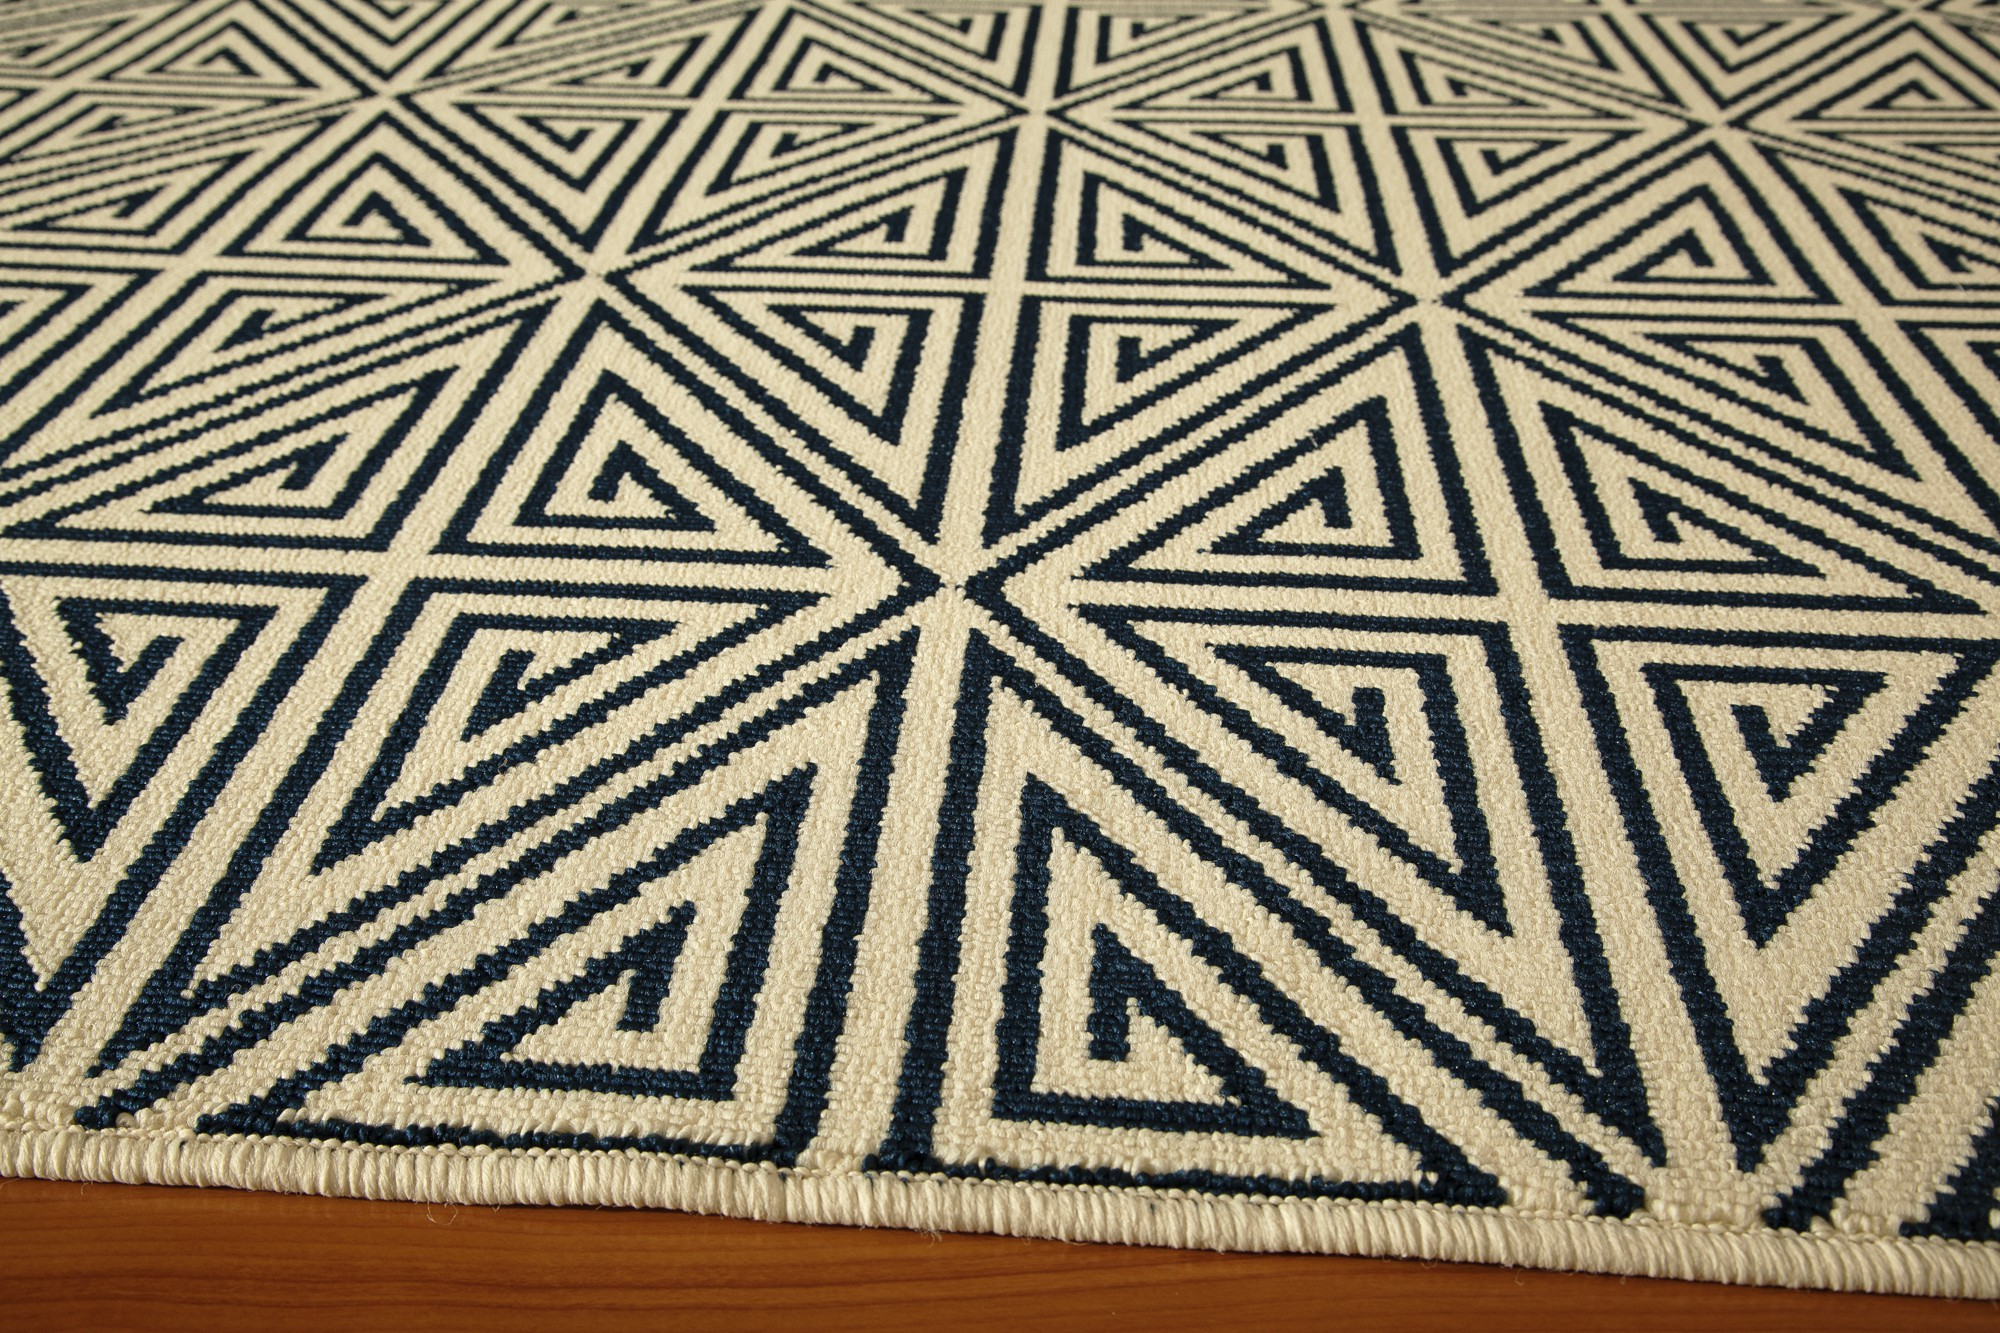 Elegant Rug In White And Black By Momeni Rugs For Floor Decor Ideas